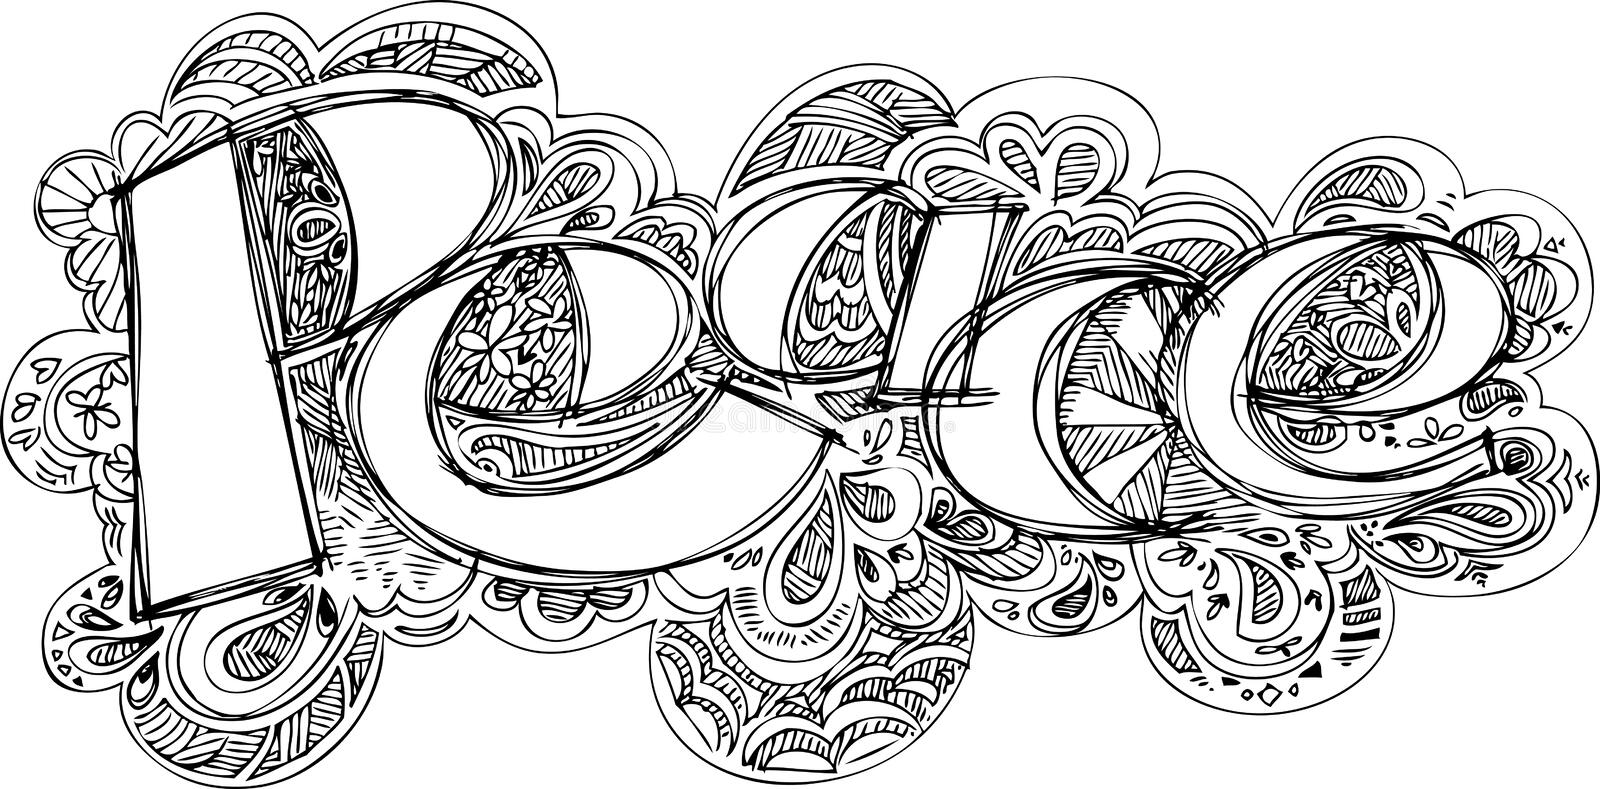 Coloring PEACE sketched doodles vector royalty free stock photo